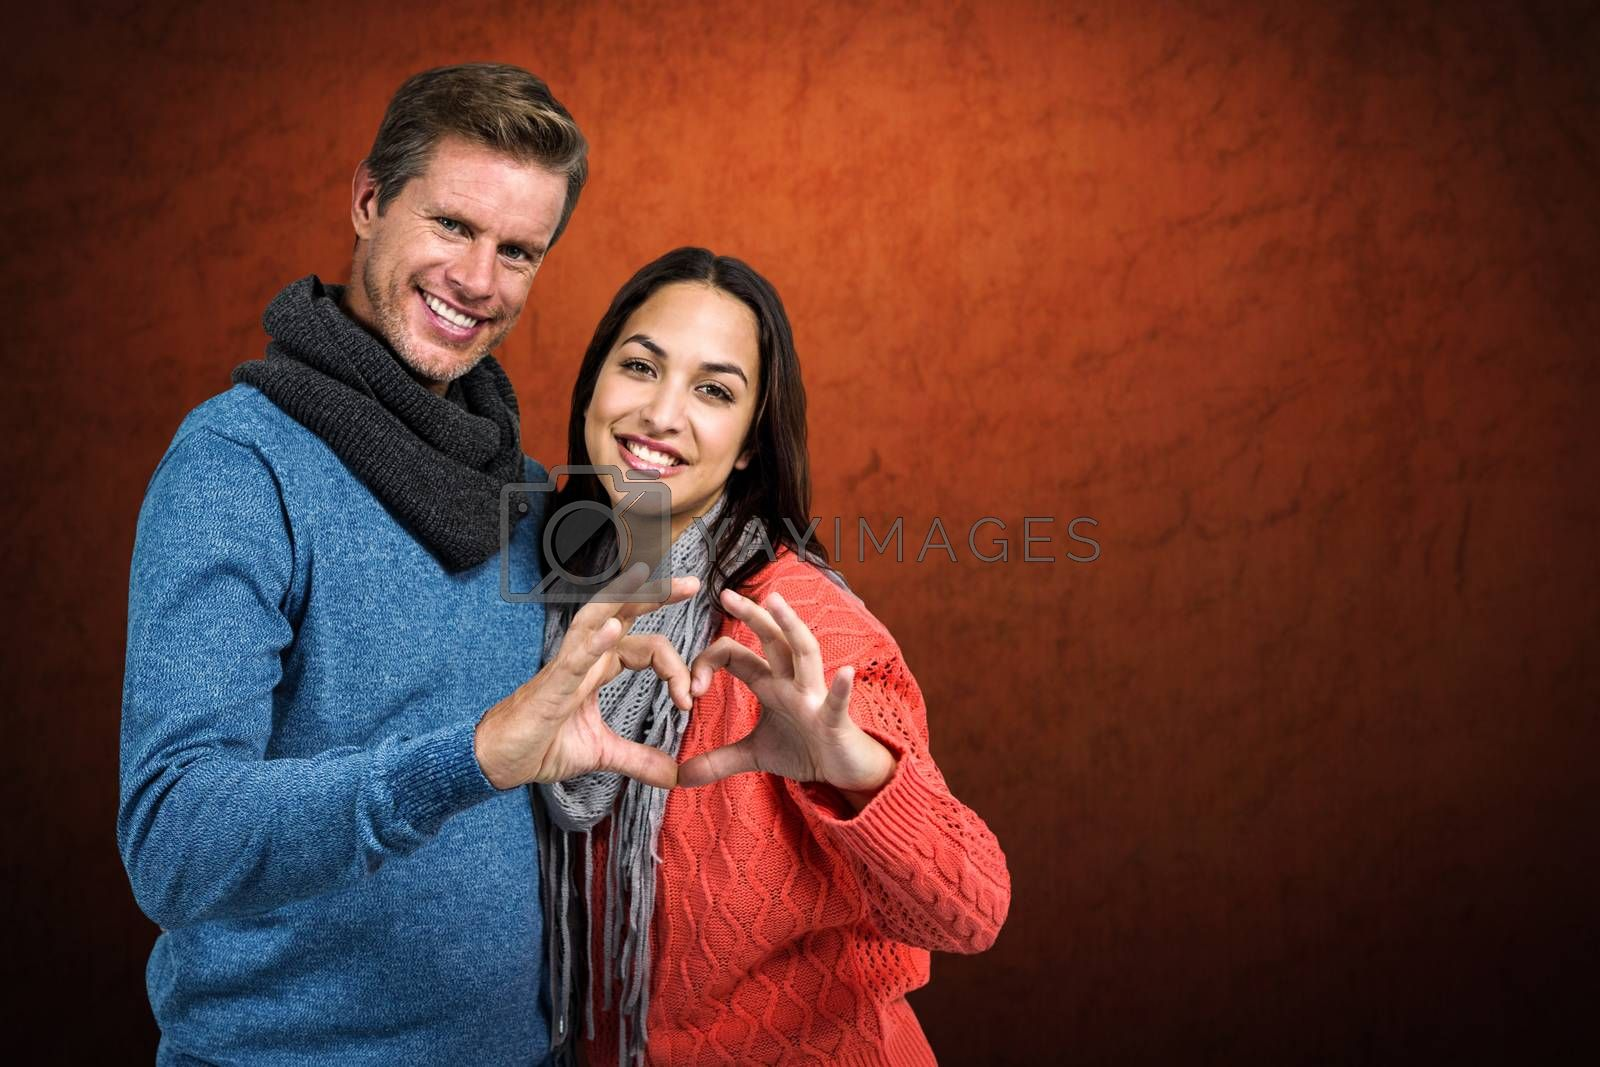 Portrait of couple making heart shape with hands against shades of brown